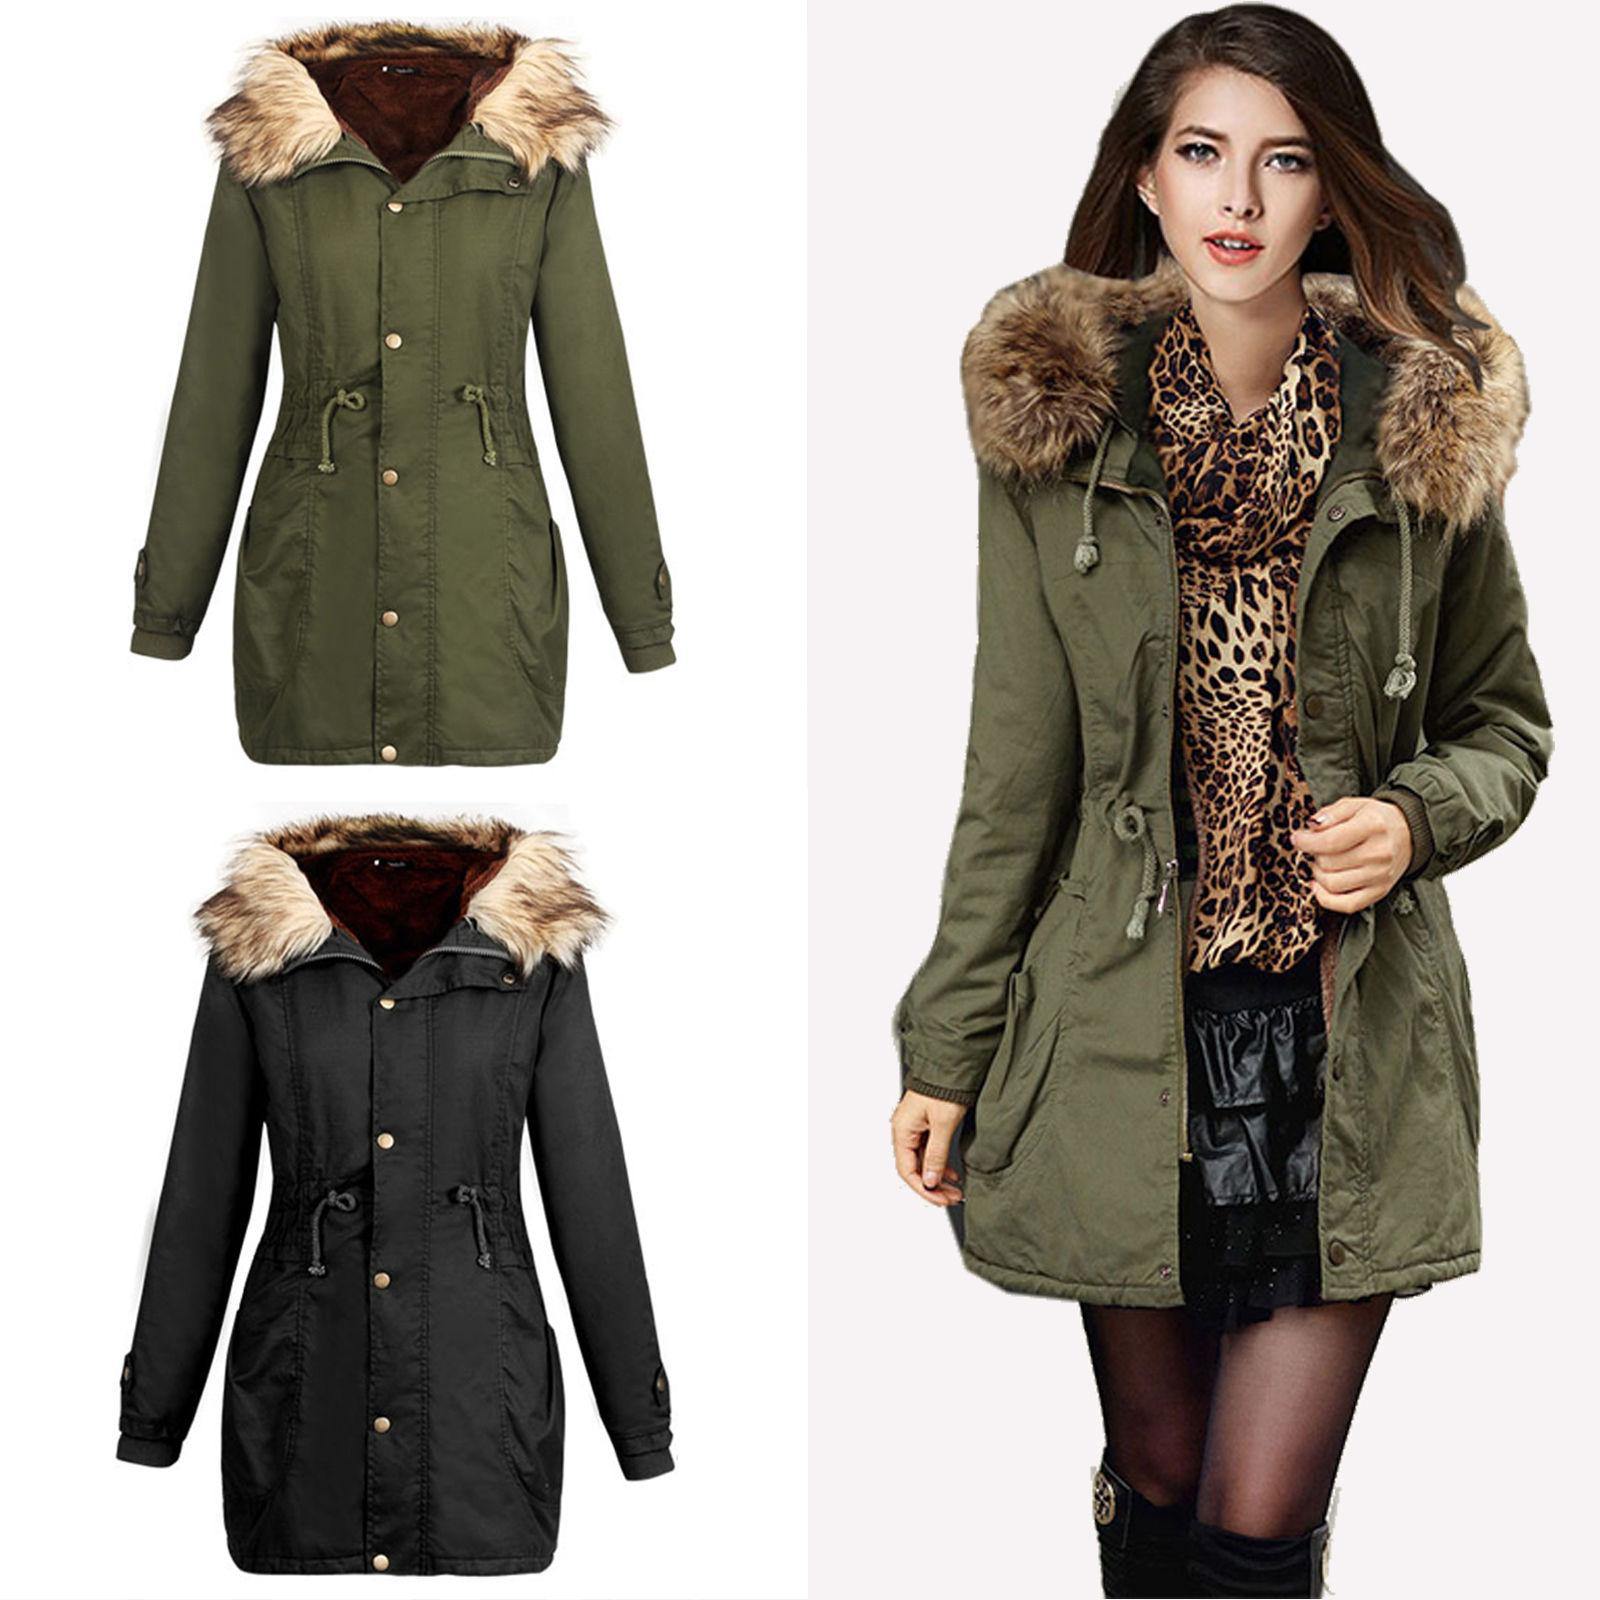 Women's Thicken Fur Collar Winter Coat Overcoat